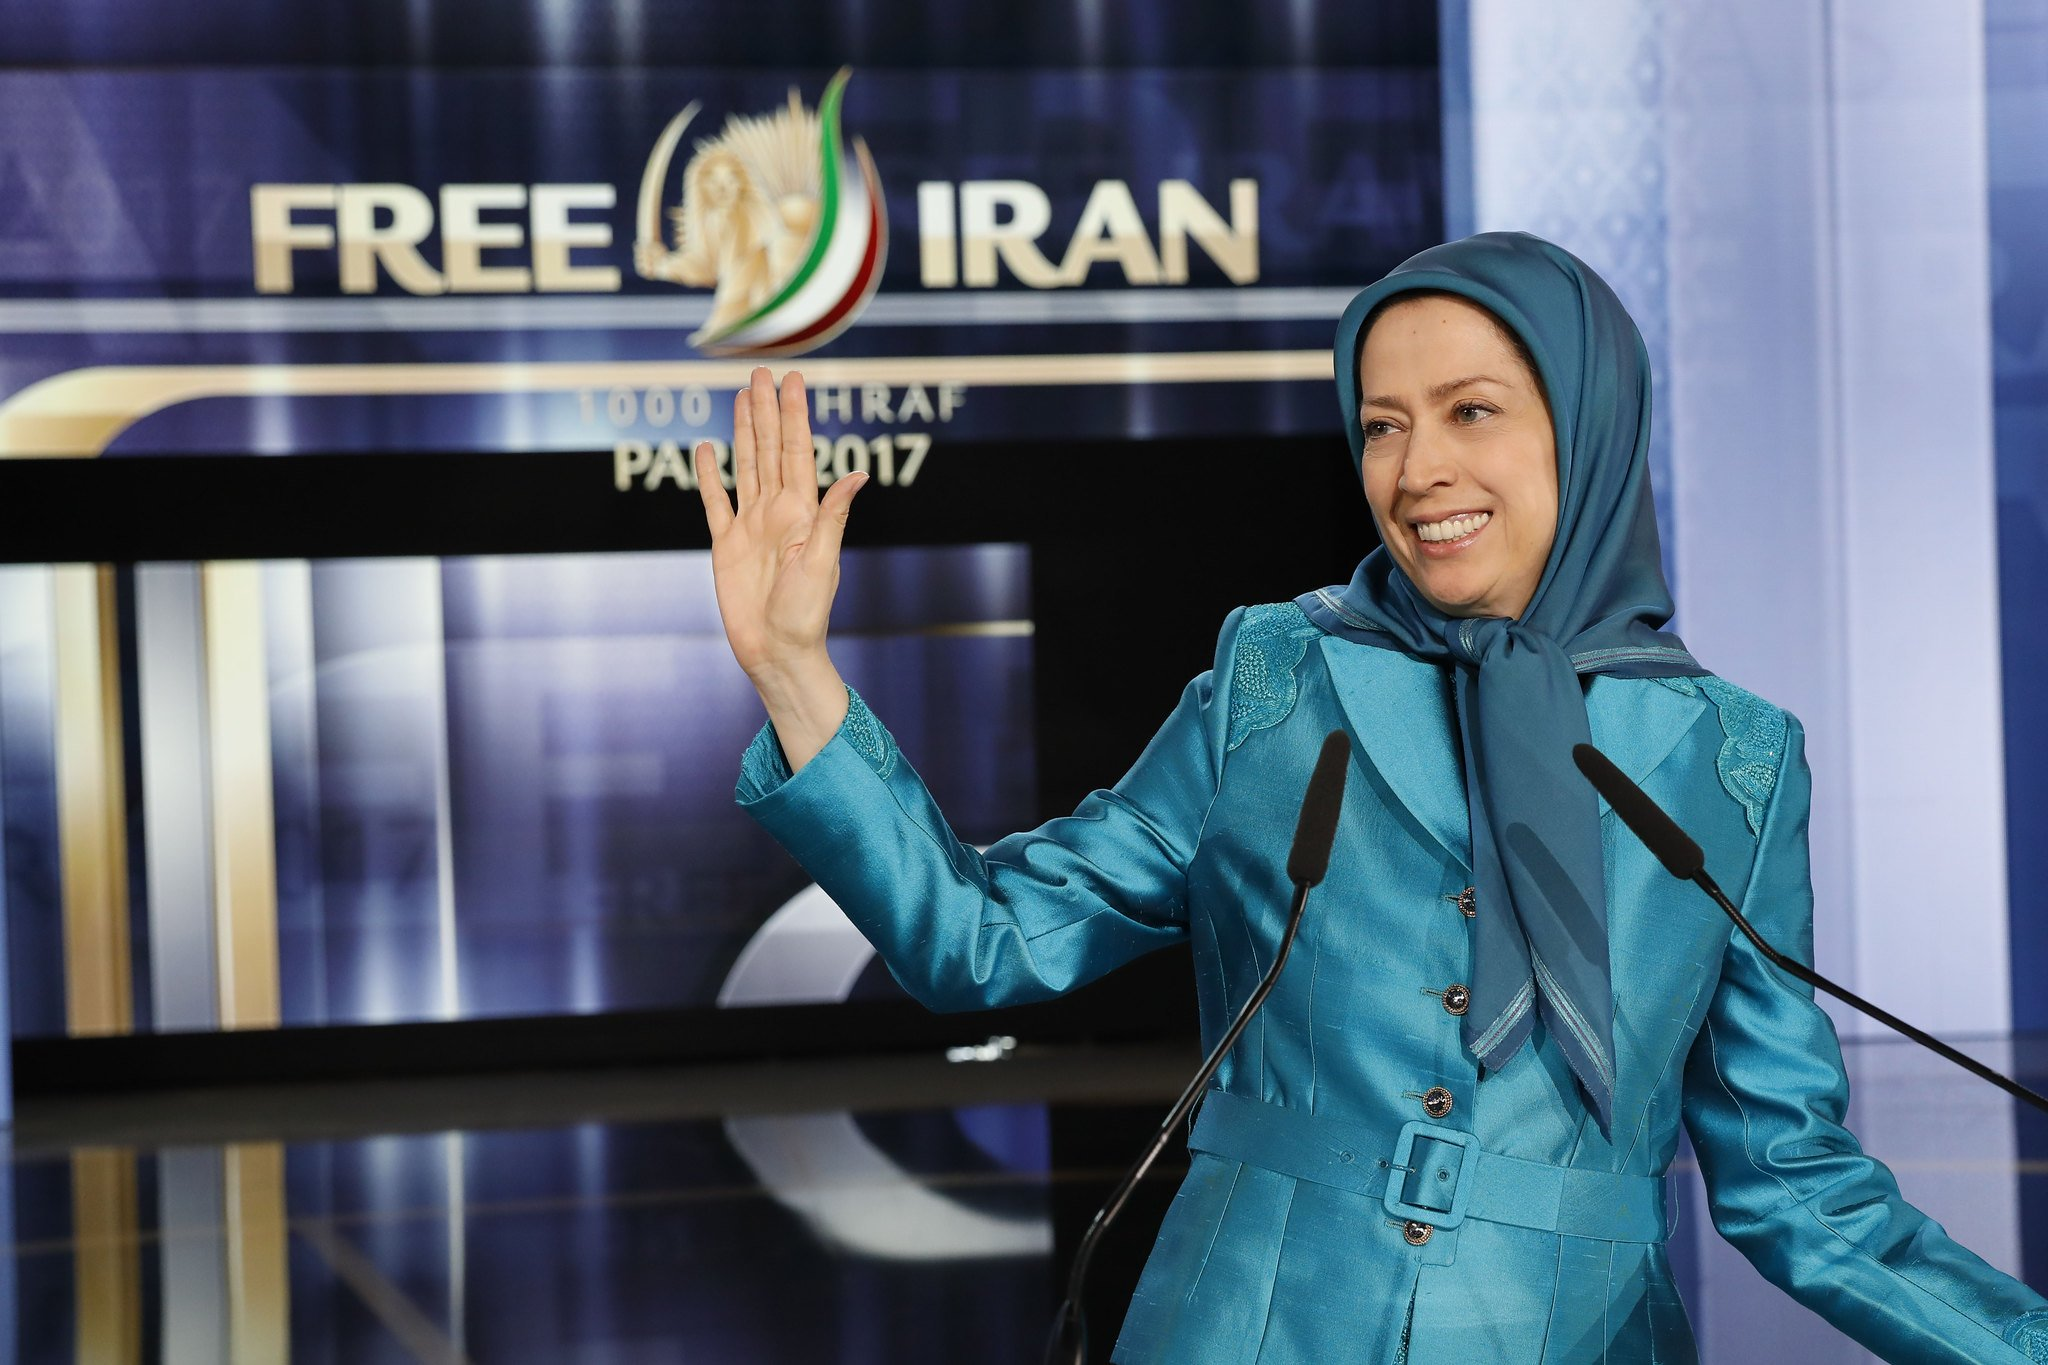 Filings Reveal Iranian Dissident Group's Foreign Influence Operation to Push for Regime Change